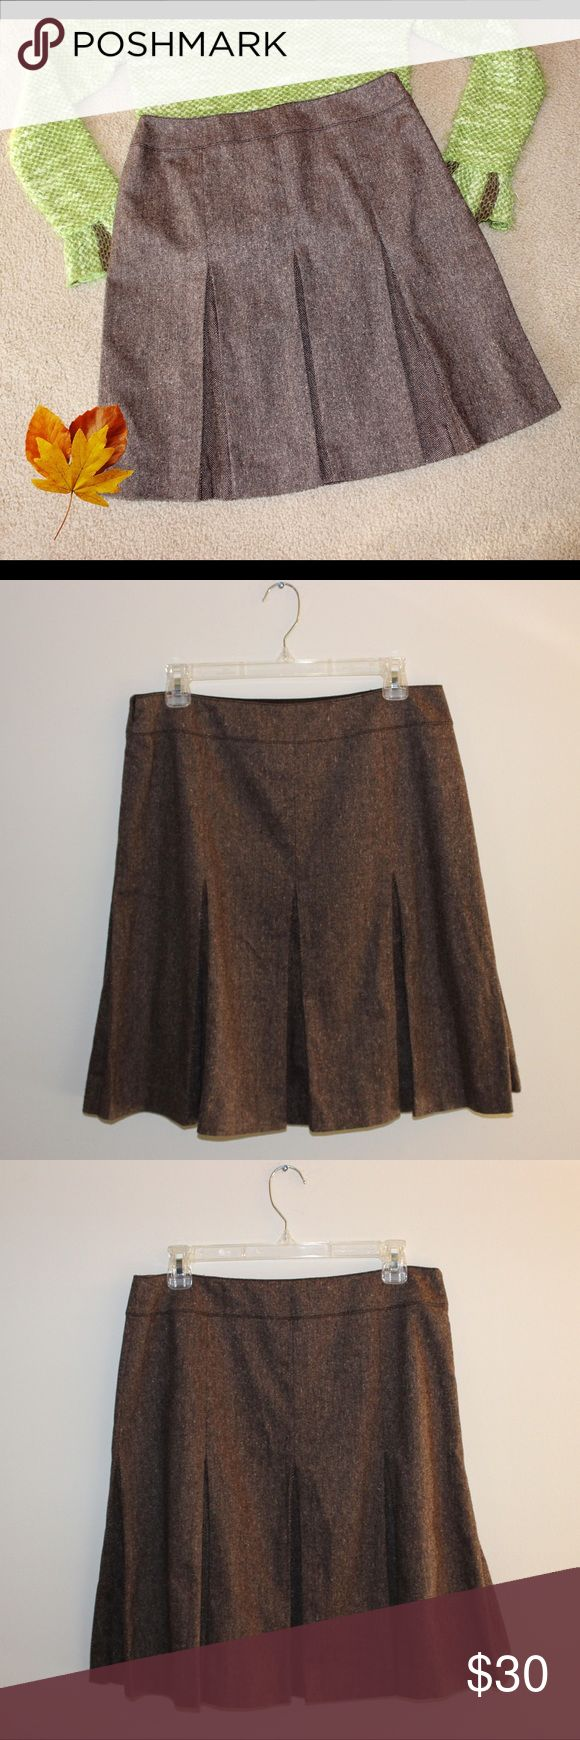 """CITY DKNY Wool Blended Pleated Skirt What a classy and versatile skirt!   * Color - Browns, tans * Waistband * Side zip * Stretchy * Pleated front and back * Fully lined with 100% acetate * Shell - 39% polyester / 31% wool / 23% acrylic / 6% nylon / 1% spandex  MEASUREMENTS   * Waist 15.5"""" * Hips 42"""" * Length 21.5""""  This skirt by CITY DKNY is in excellent condition, without flaws, and is a size 8. CITY DKNY Skirts"""